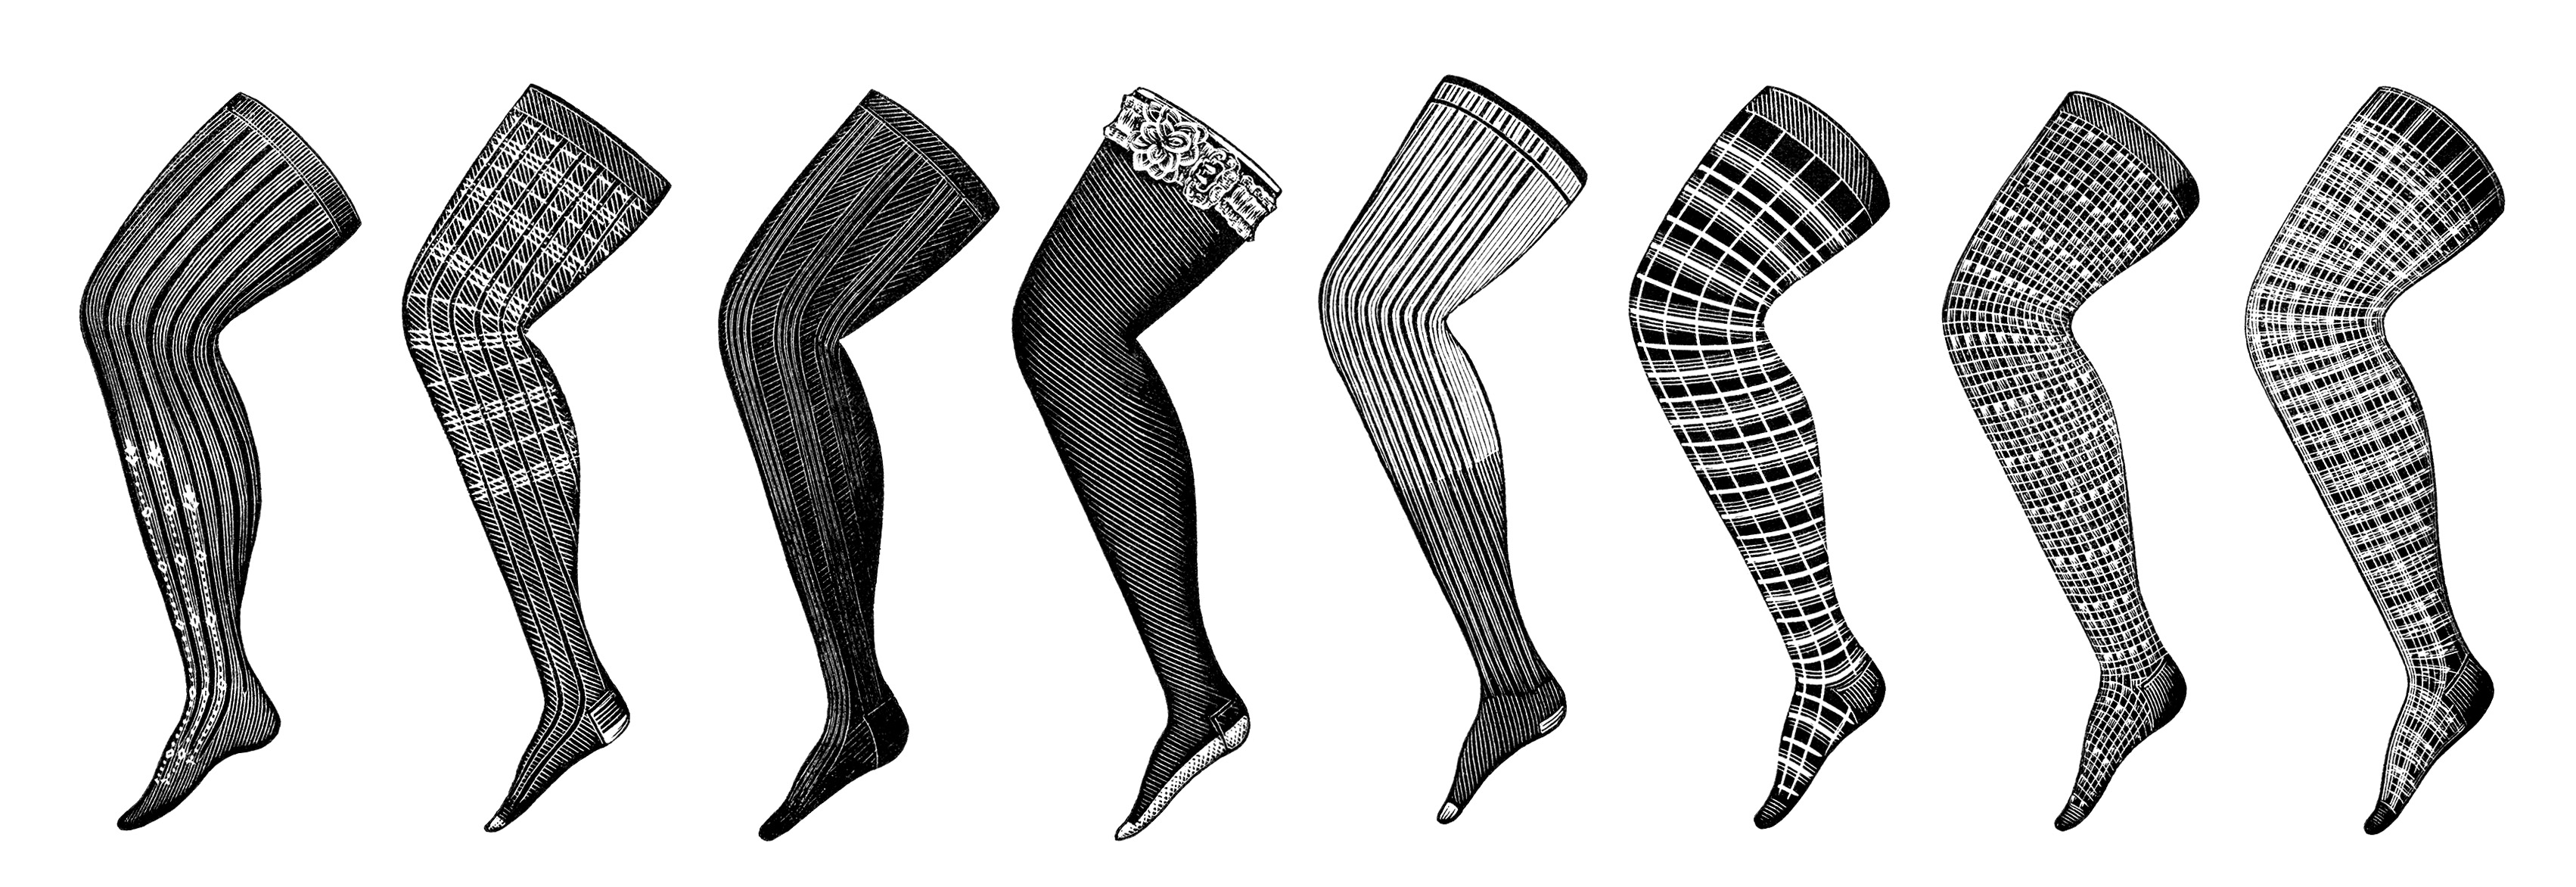 steampunk leg graphic, antique ladies hosiery illustration, Koch catalogue page, Victorian fashion image, vintage leg clip art, black and white clipart